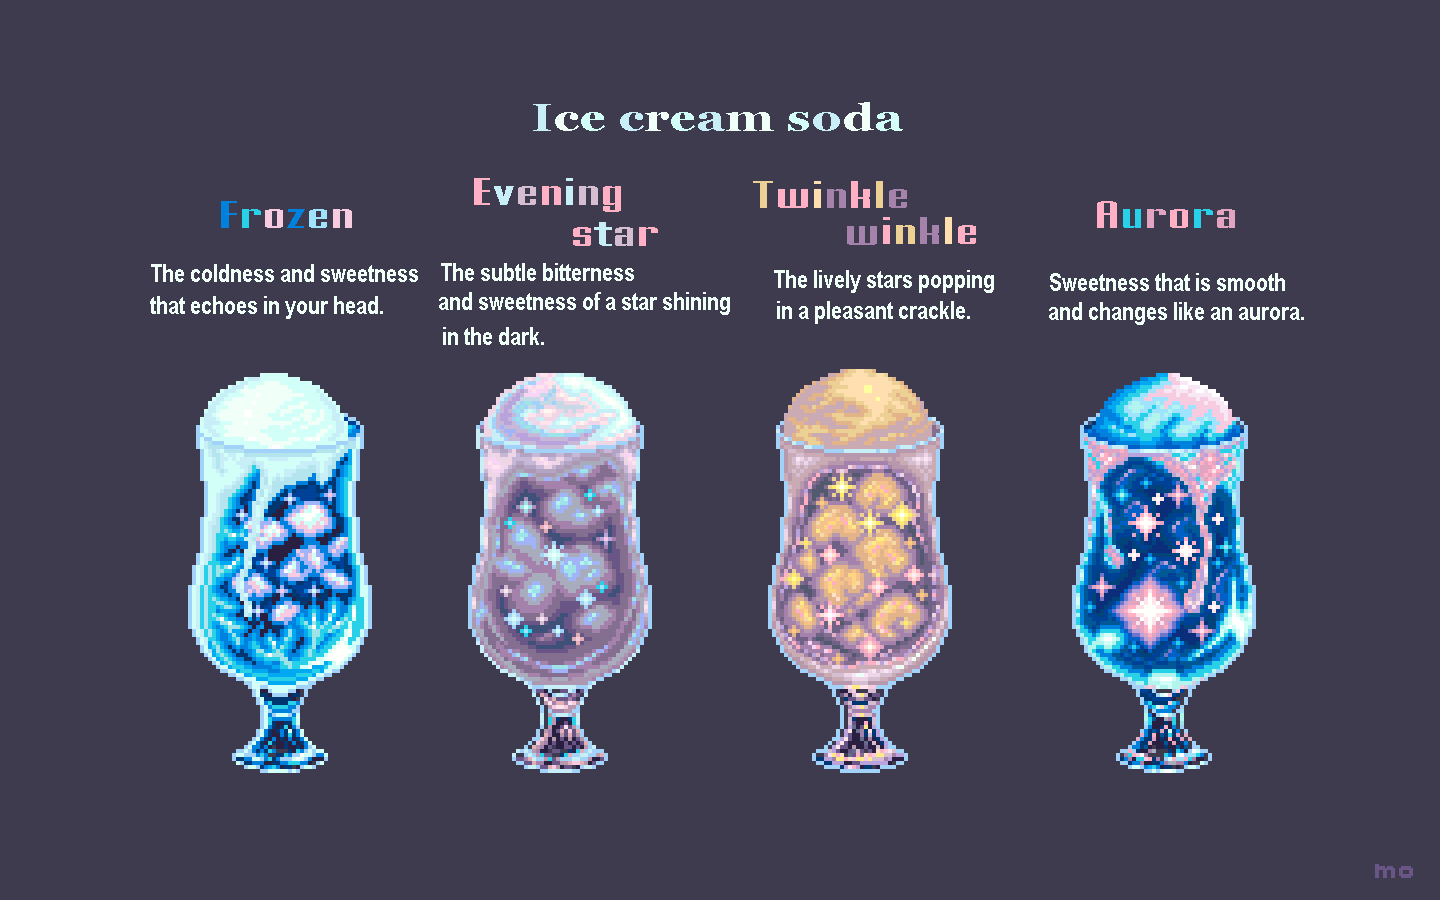 Ice cream soda